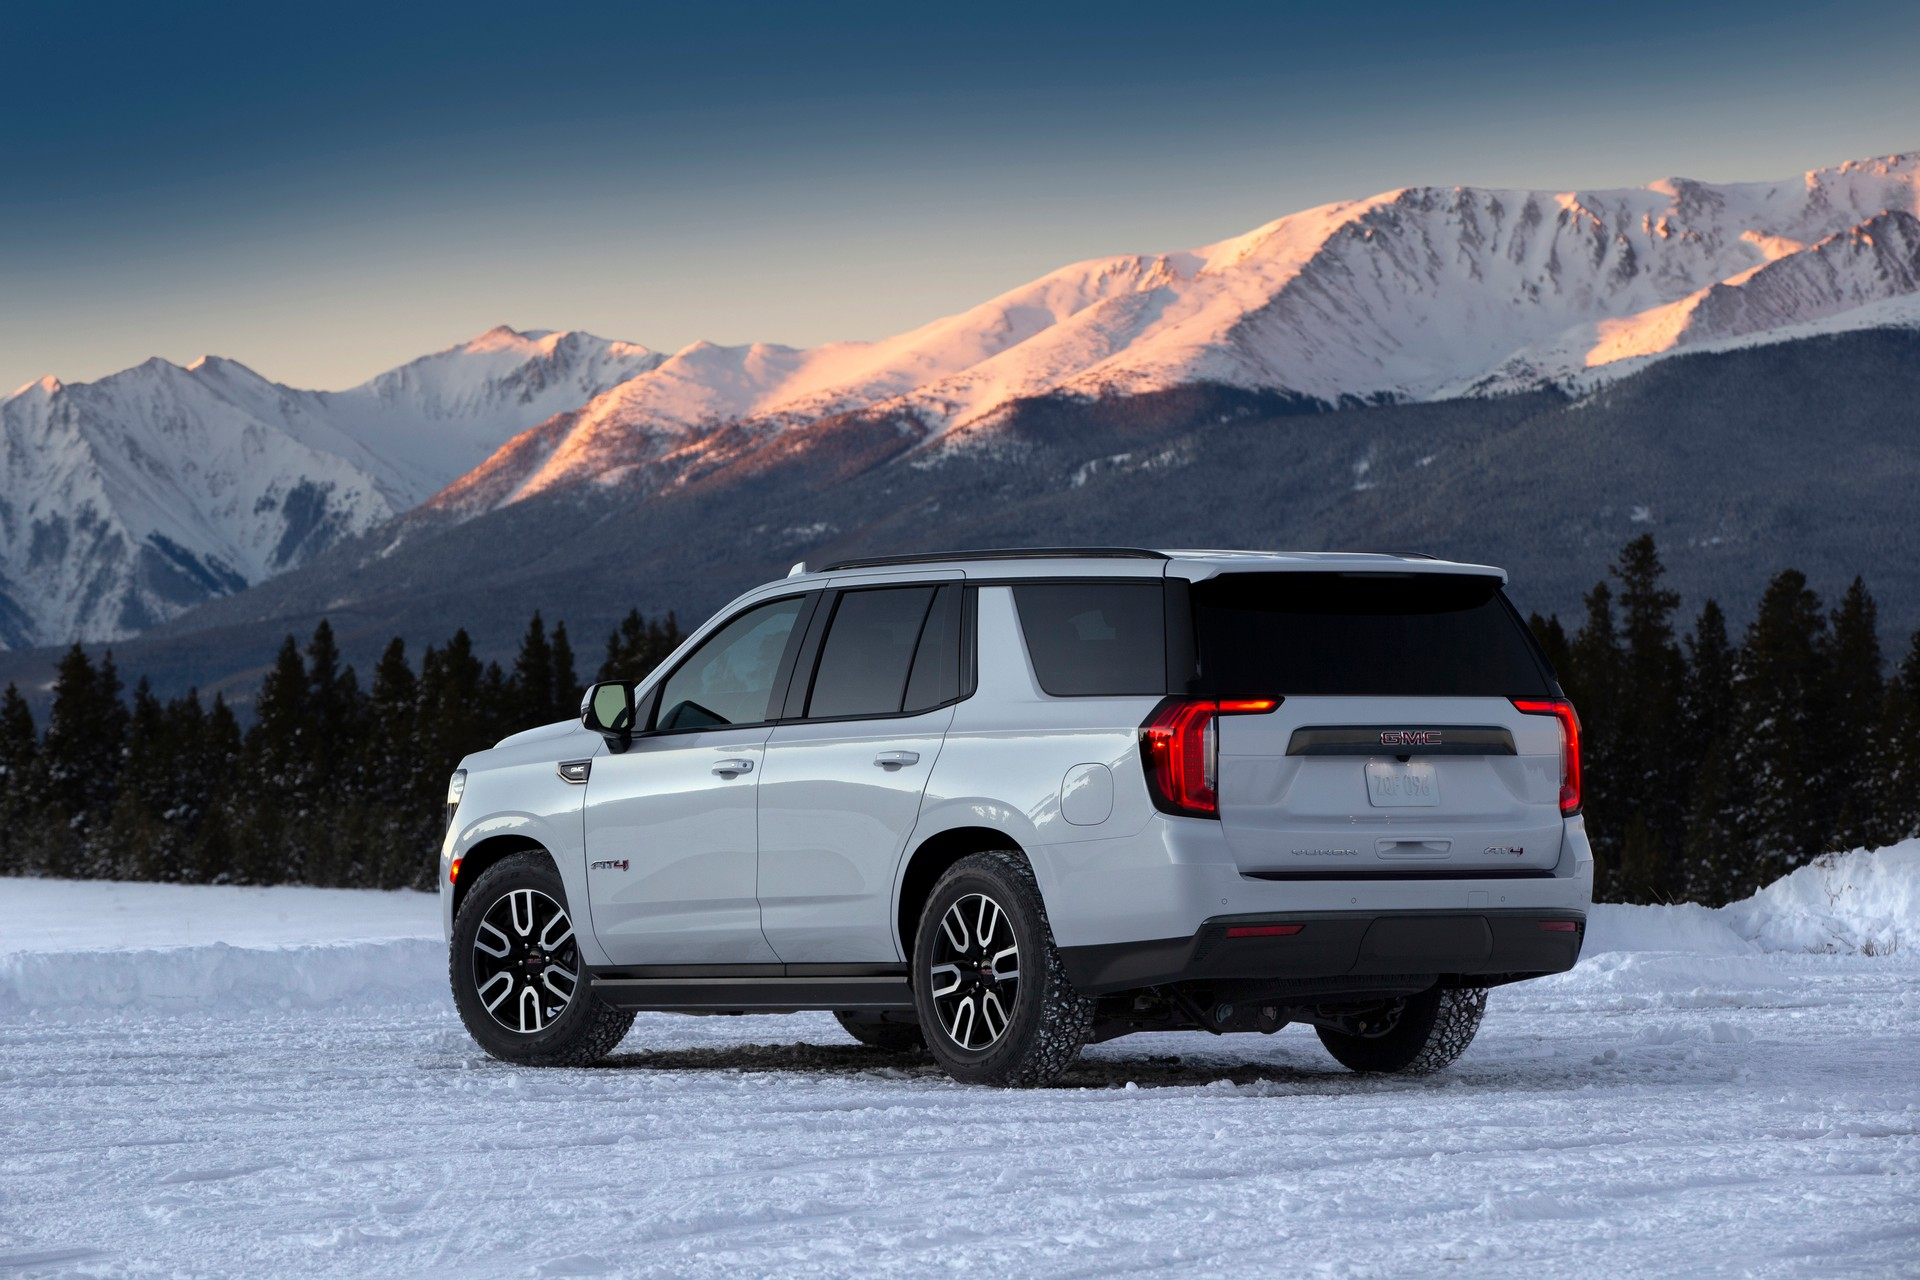 2021 GMC Yukon Is All-New From The Ground Up, Gains Rugged ...